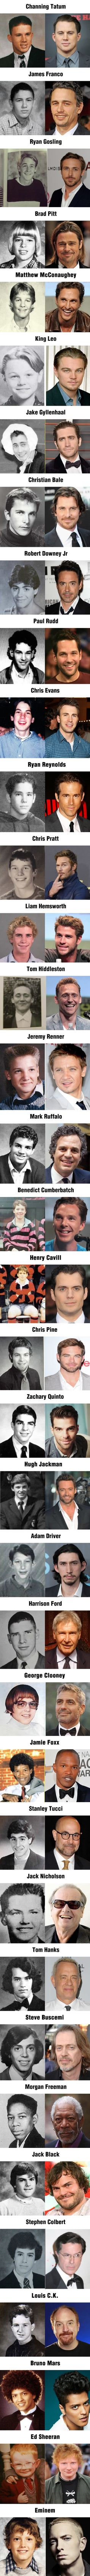 37 Male Celebrities And Their Oddly Cute Yearbook Photos